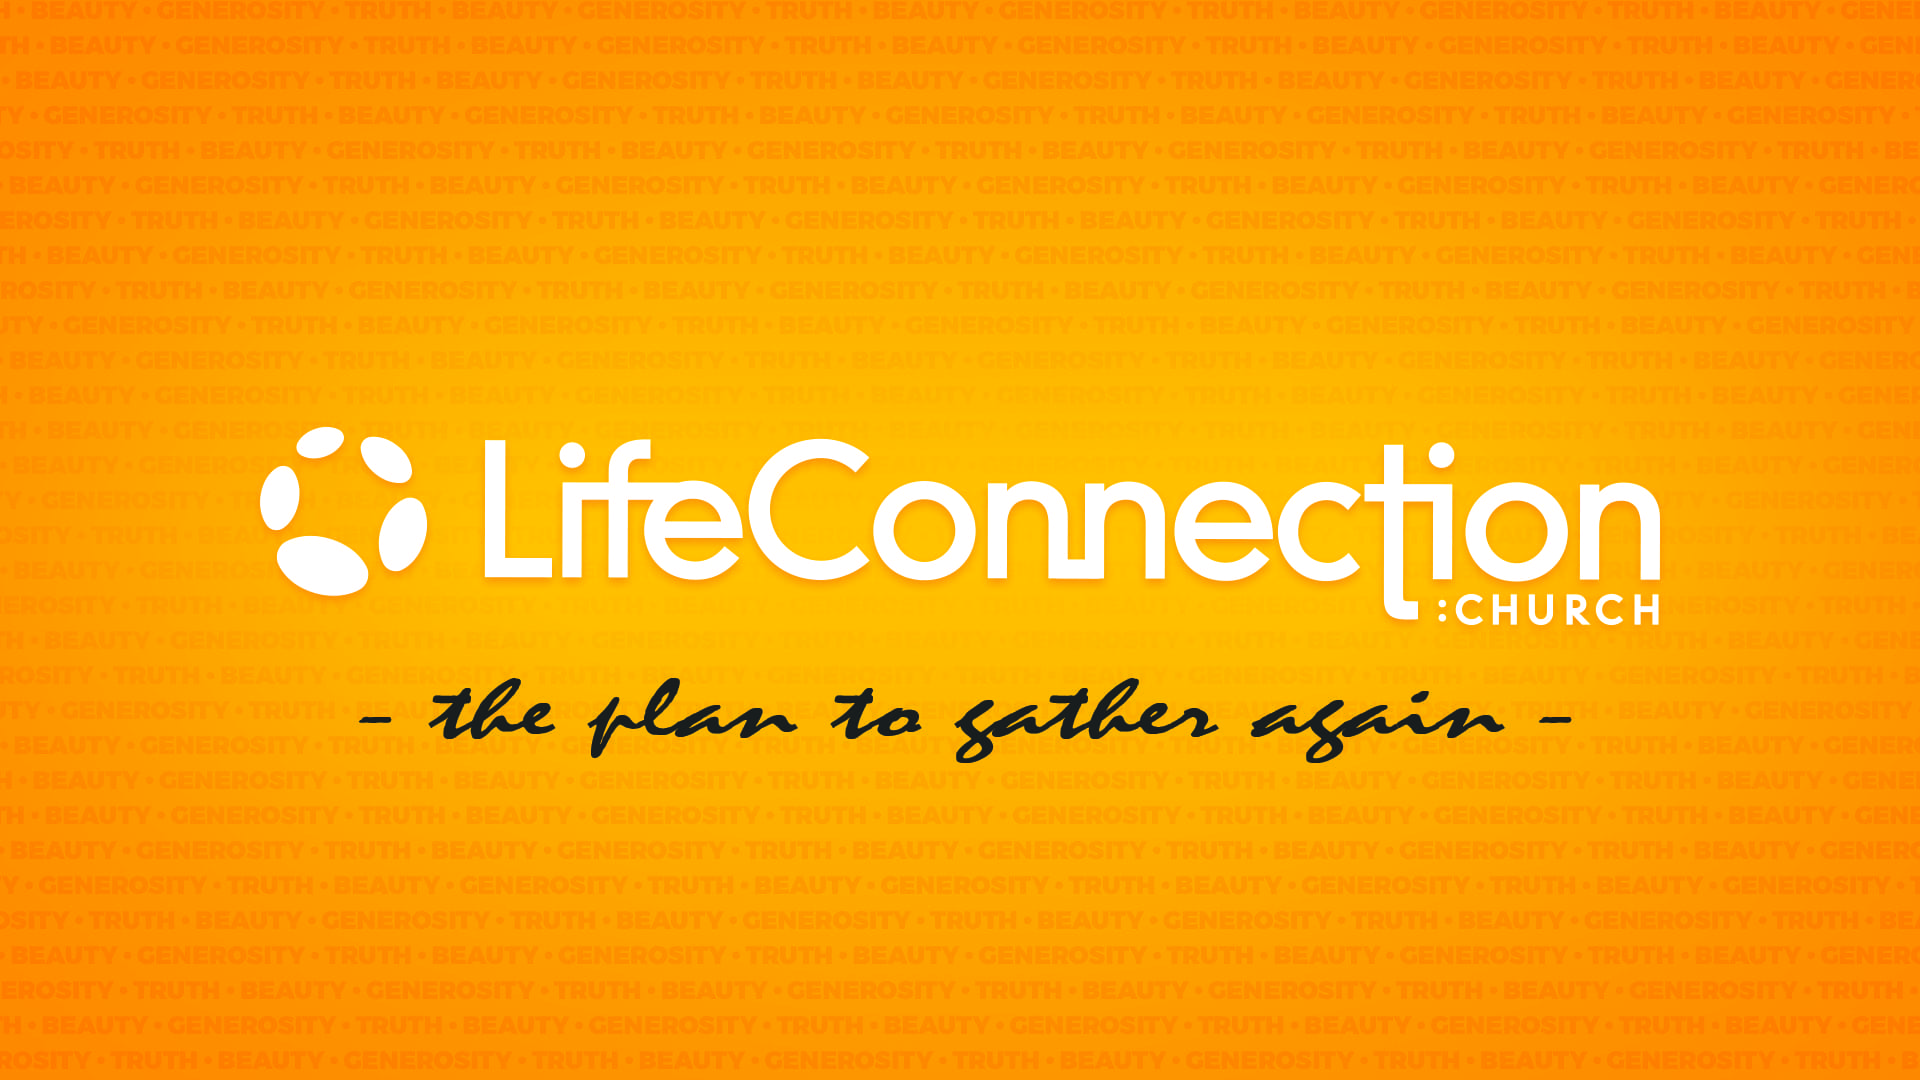 LifeConnection Church - Phases-01